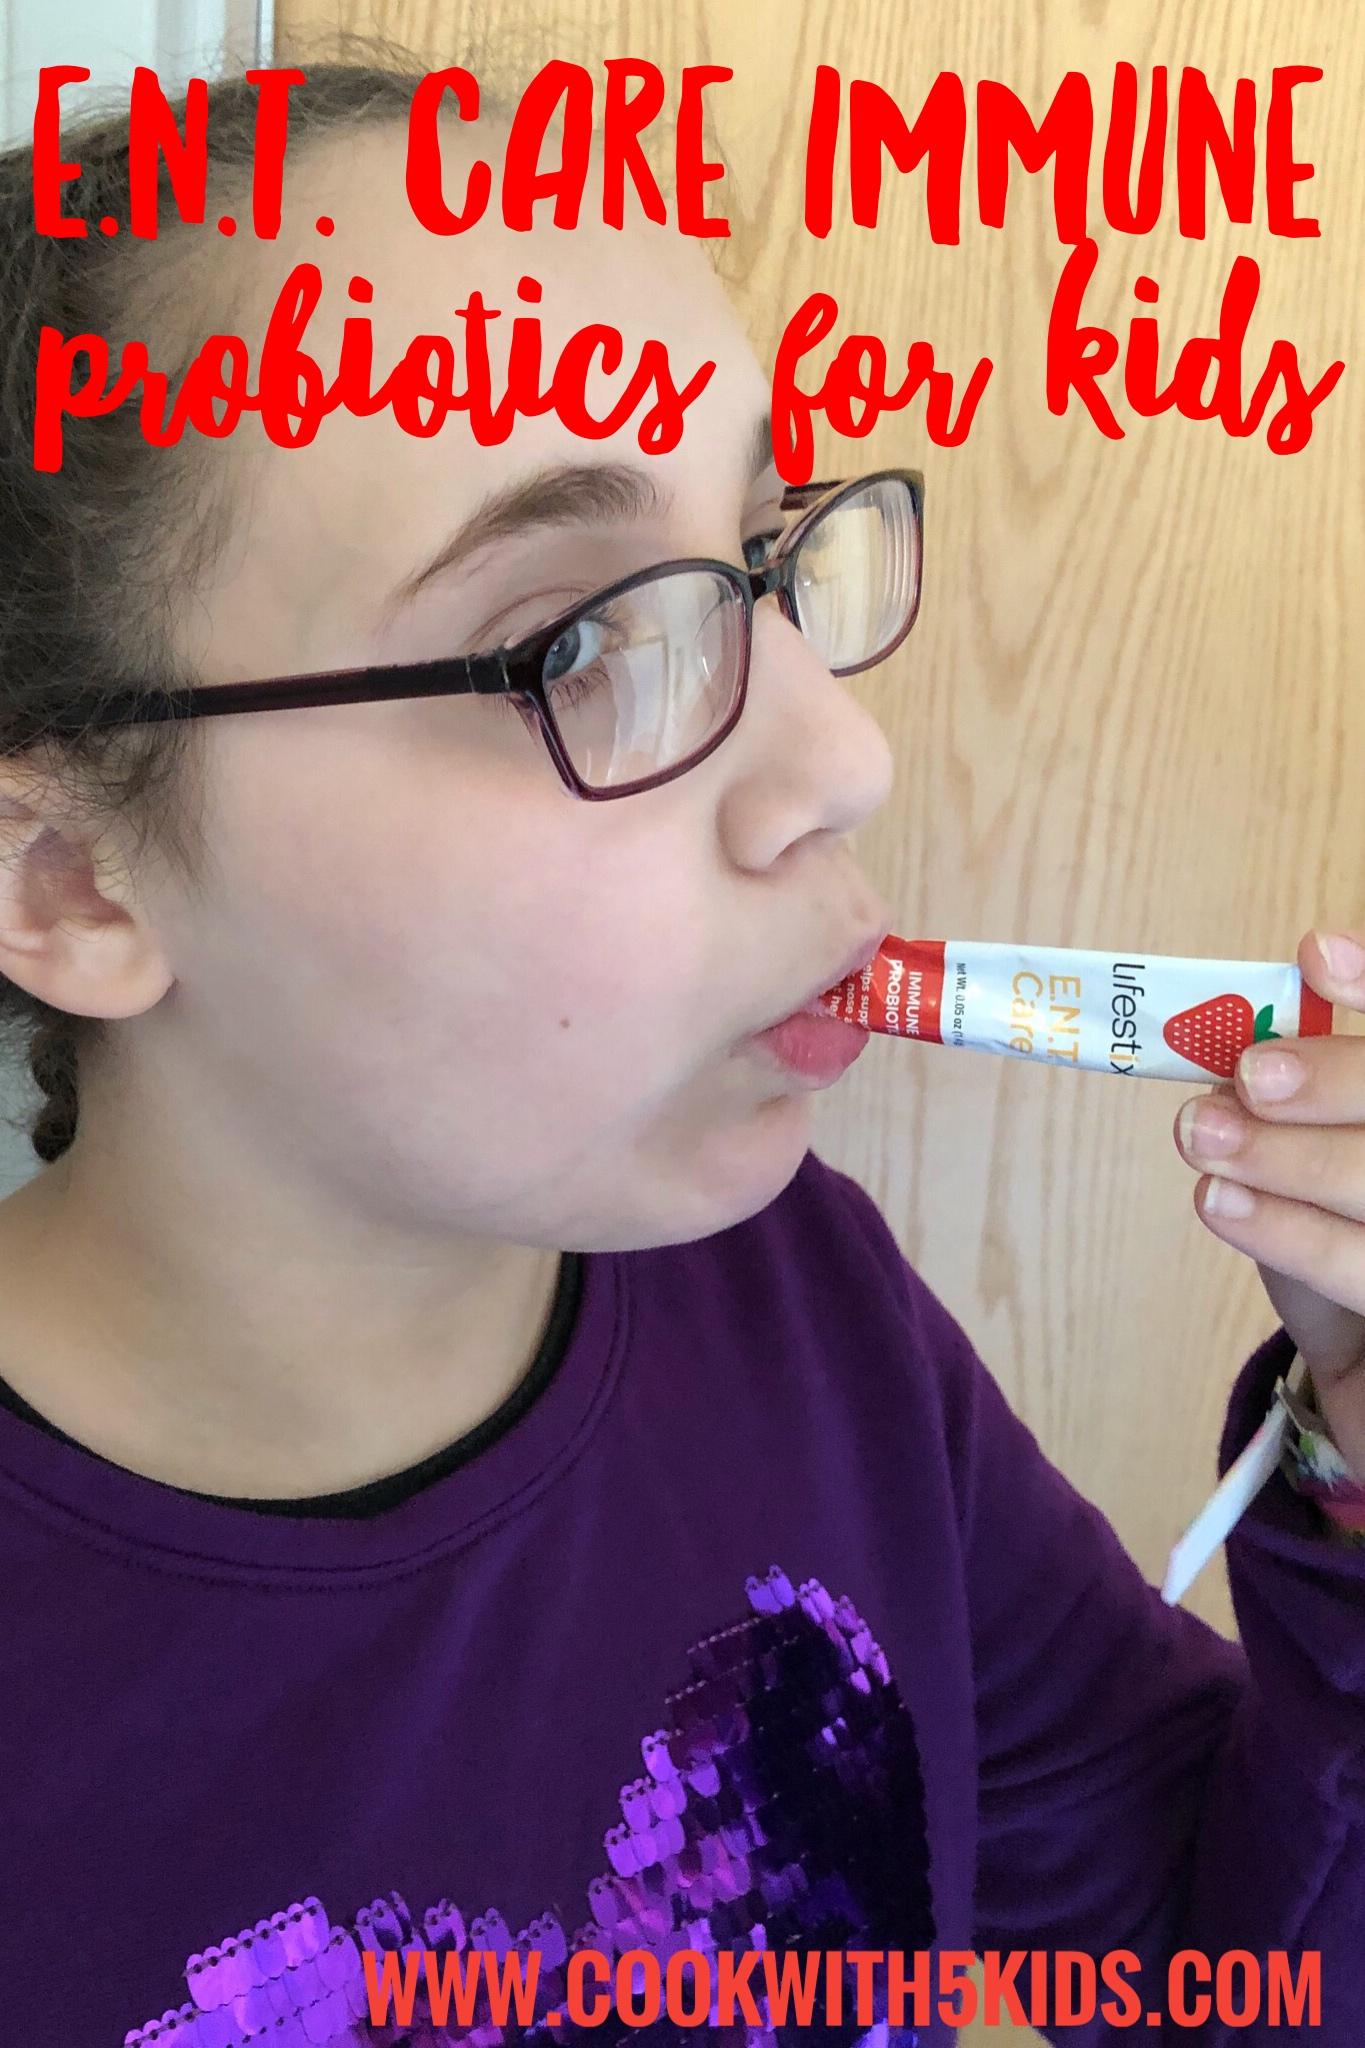 On the go Once a day, Strawberry flavored probiotic supplements that my kids love